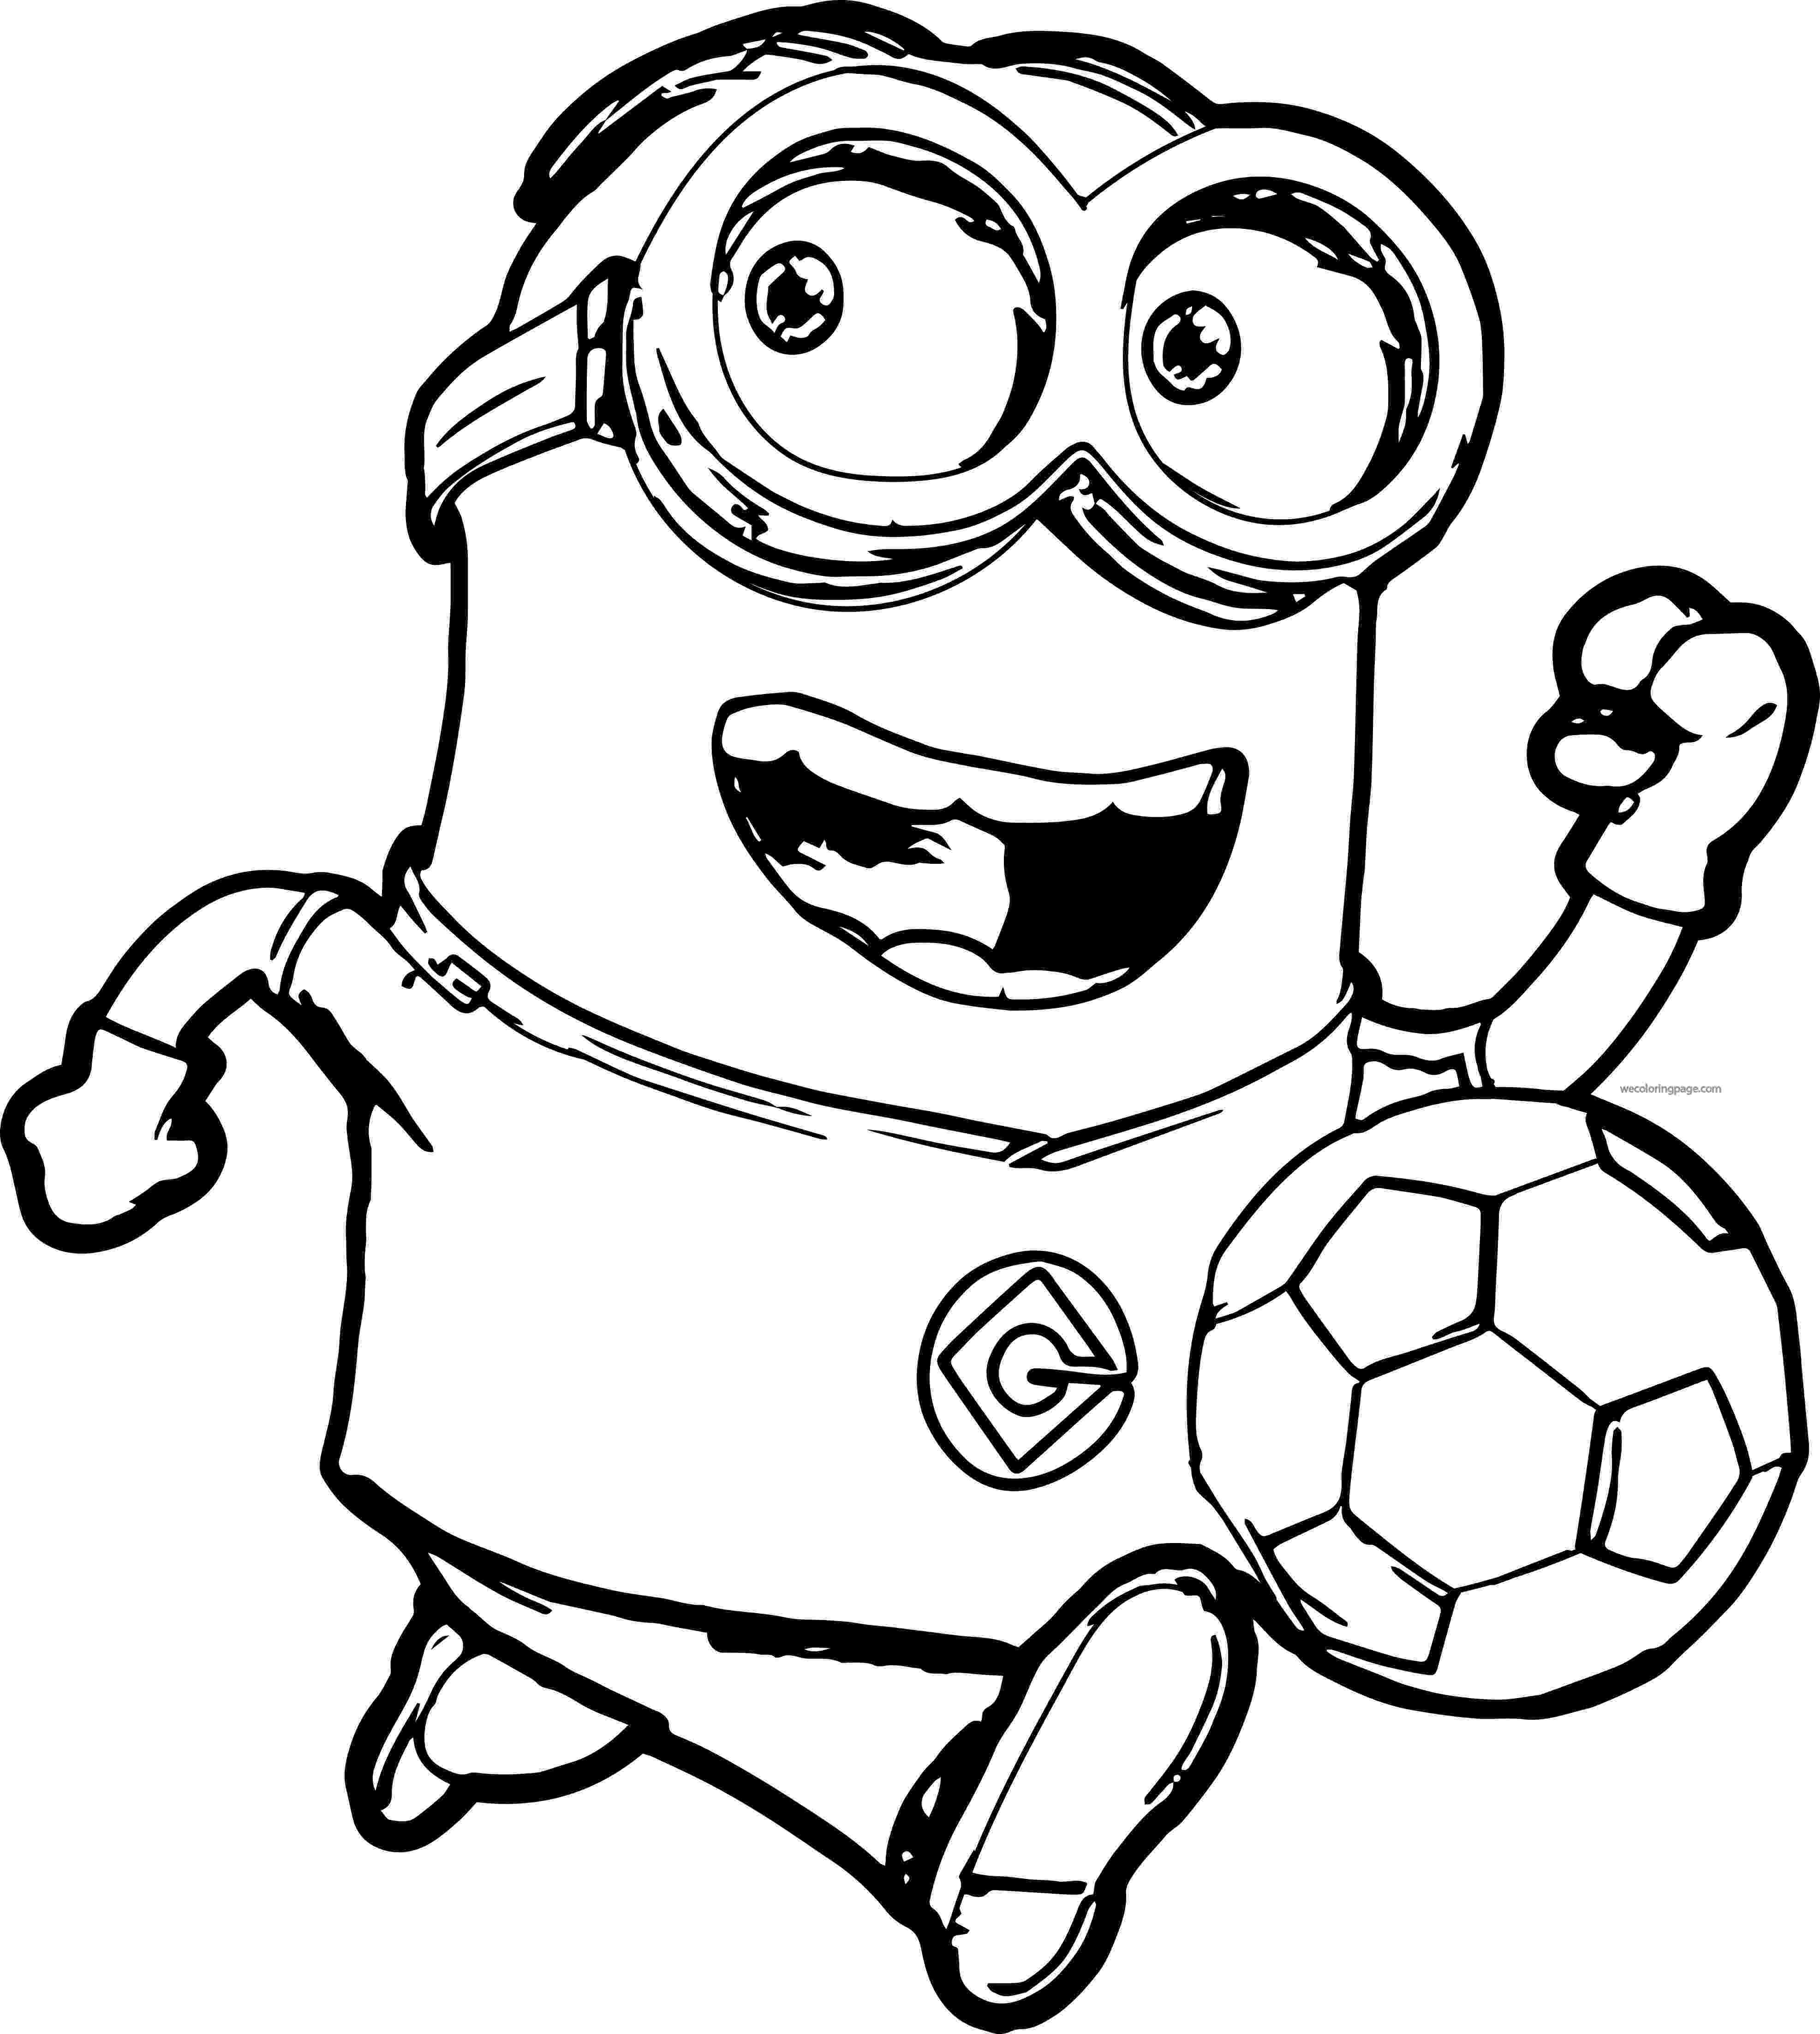 pictures of minions to color minion coloring pages best coloring pages for kids of to pictures minions color